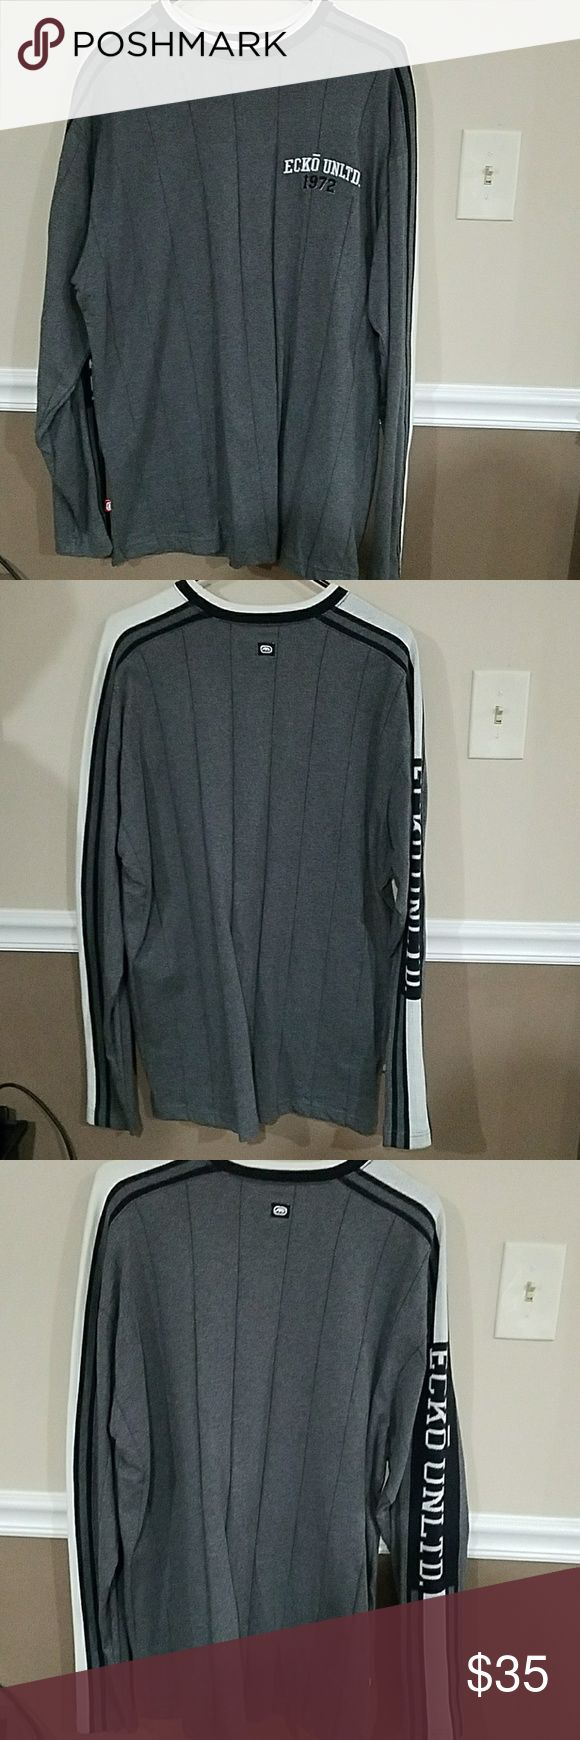 Ecko sweater Barely worn, good condition, slight discoloration around color Ecko Unlimited Sweaters